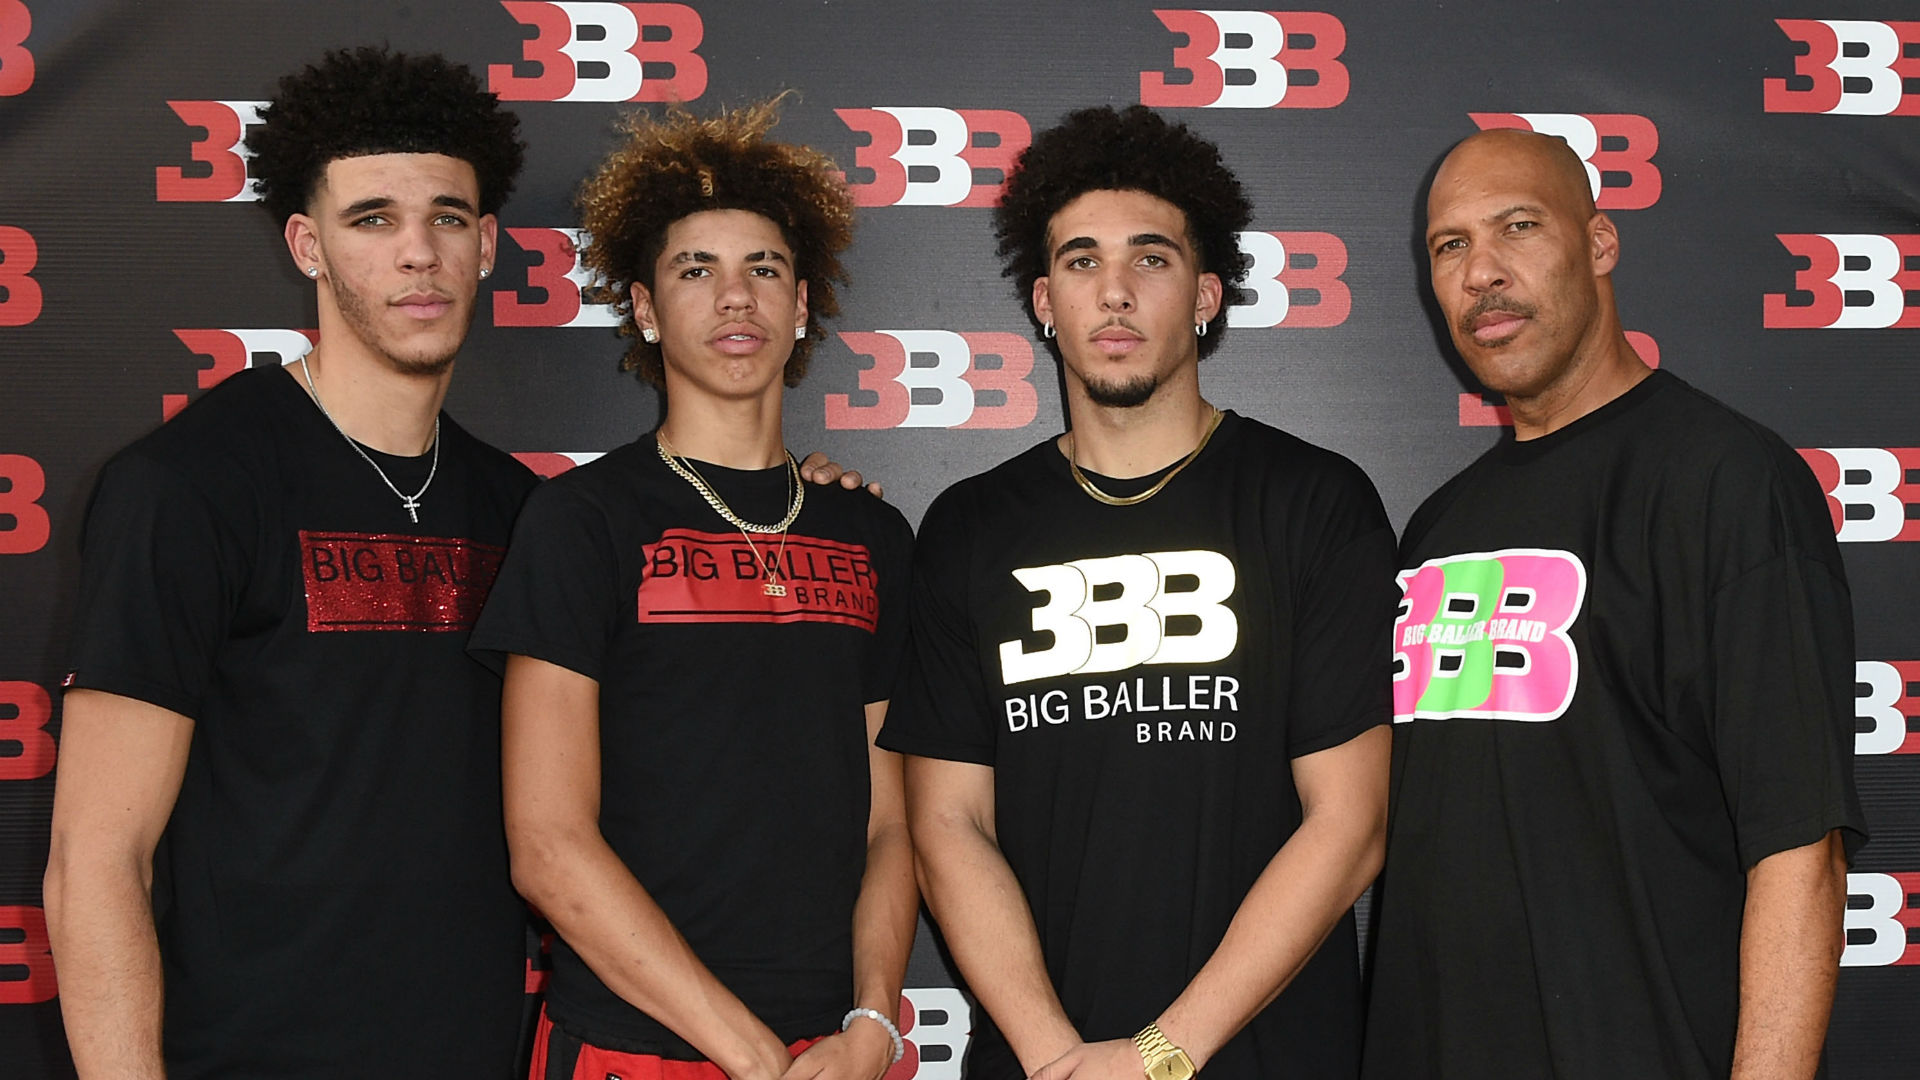 f3d5ec8d0 LaMelo and LiAngelo Ball s Lithuania jerseys are  99